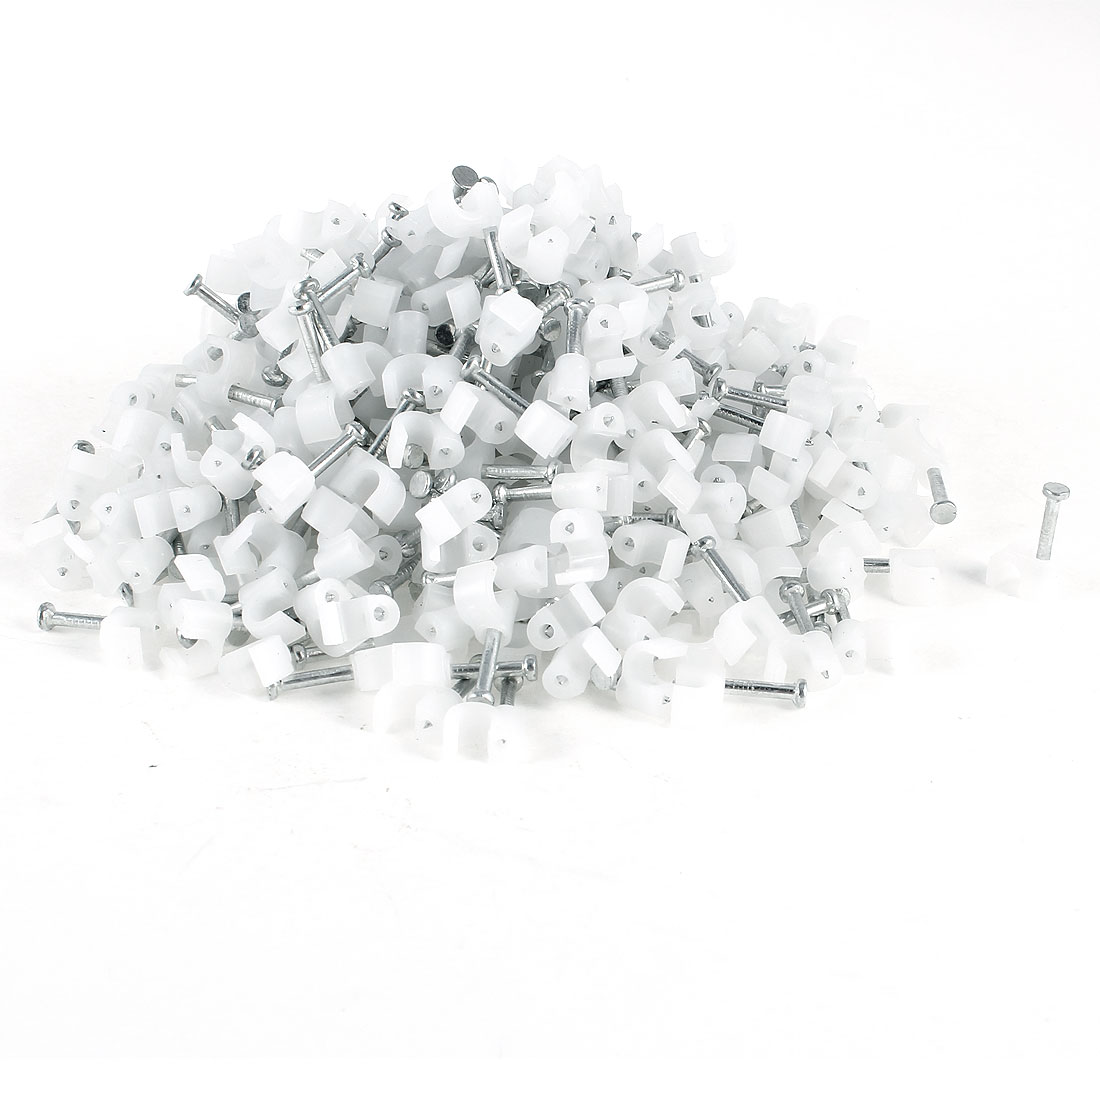 700 Pcs 3.5mm Diameter Electric Cable White Plastic Circle Nail Clips